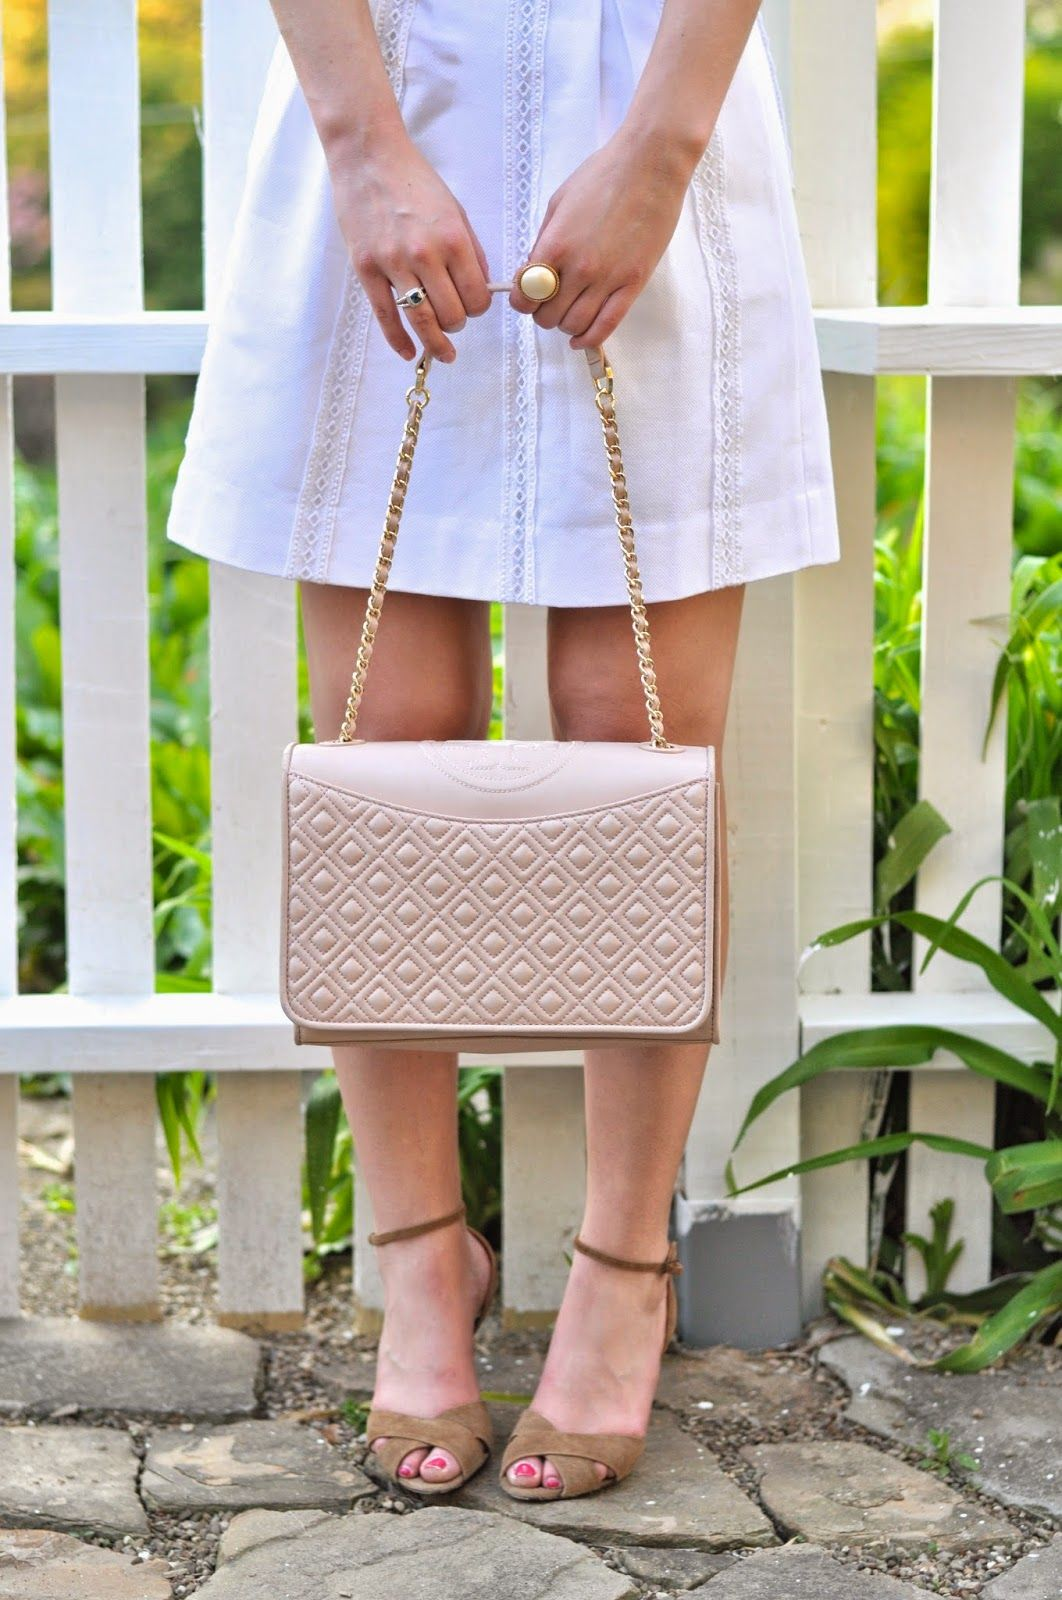 tory burch fleming, ralph lauren collection shoes and j. crew white skirt